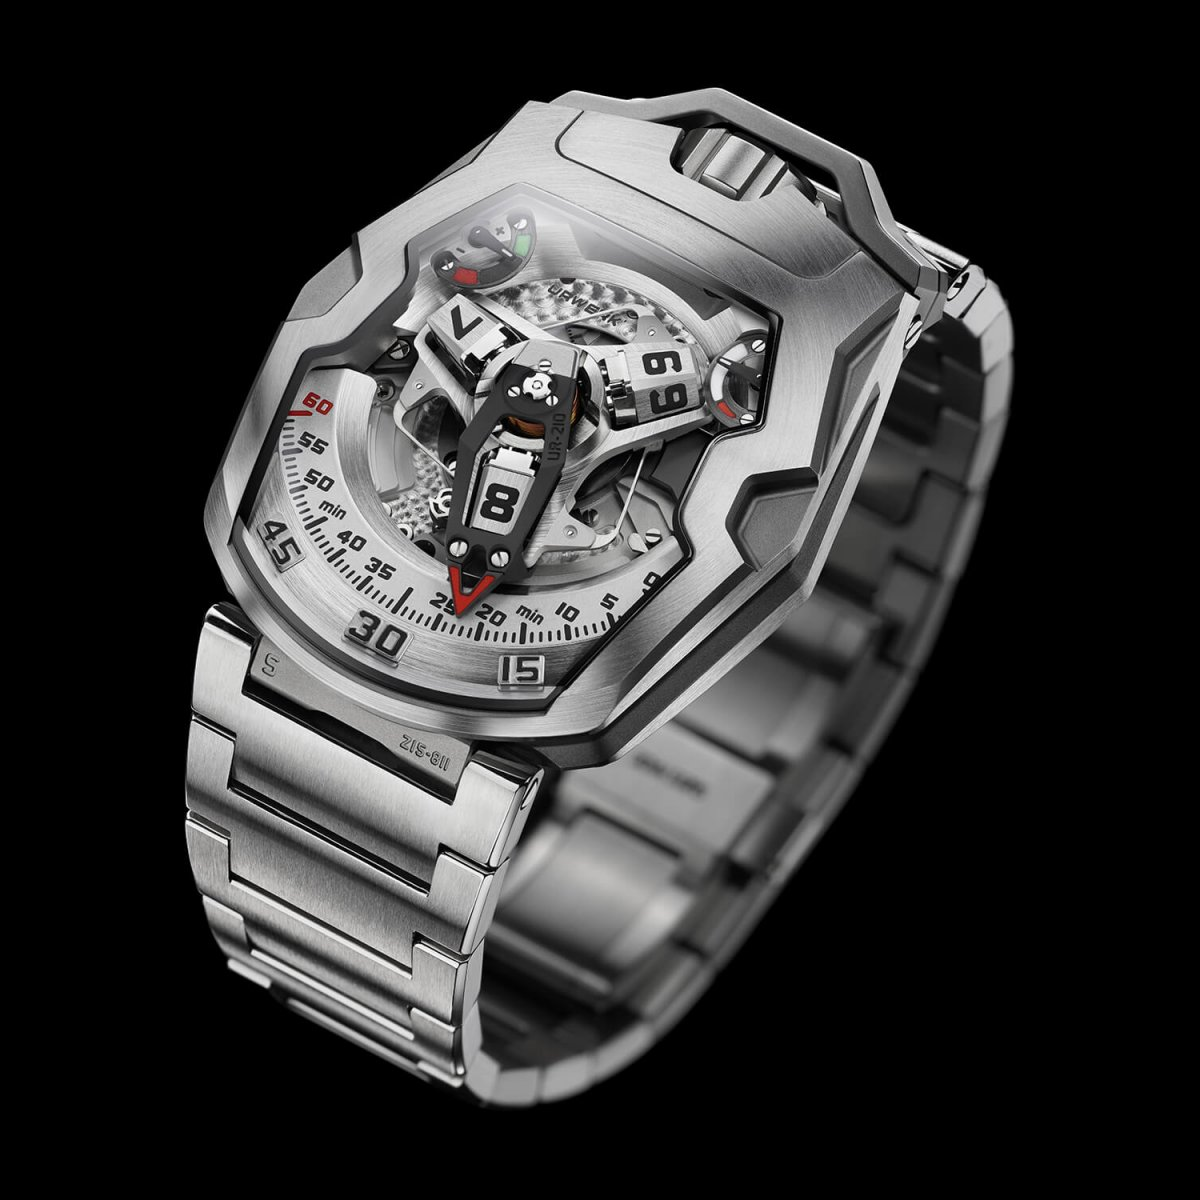 Swiss timepieces satellite watch UR-210